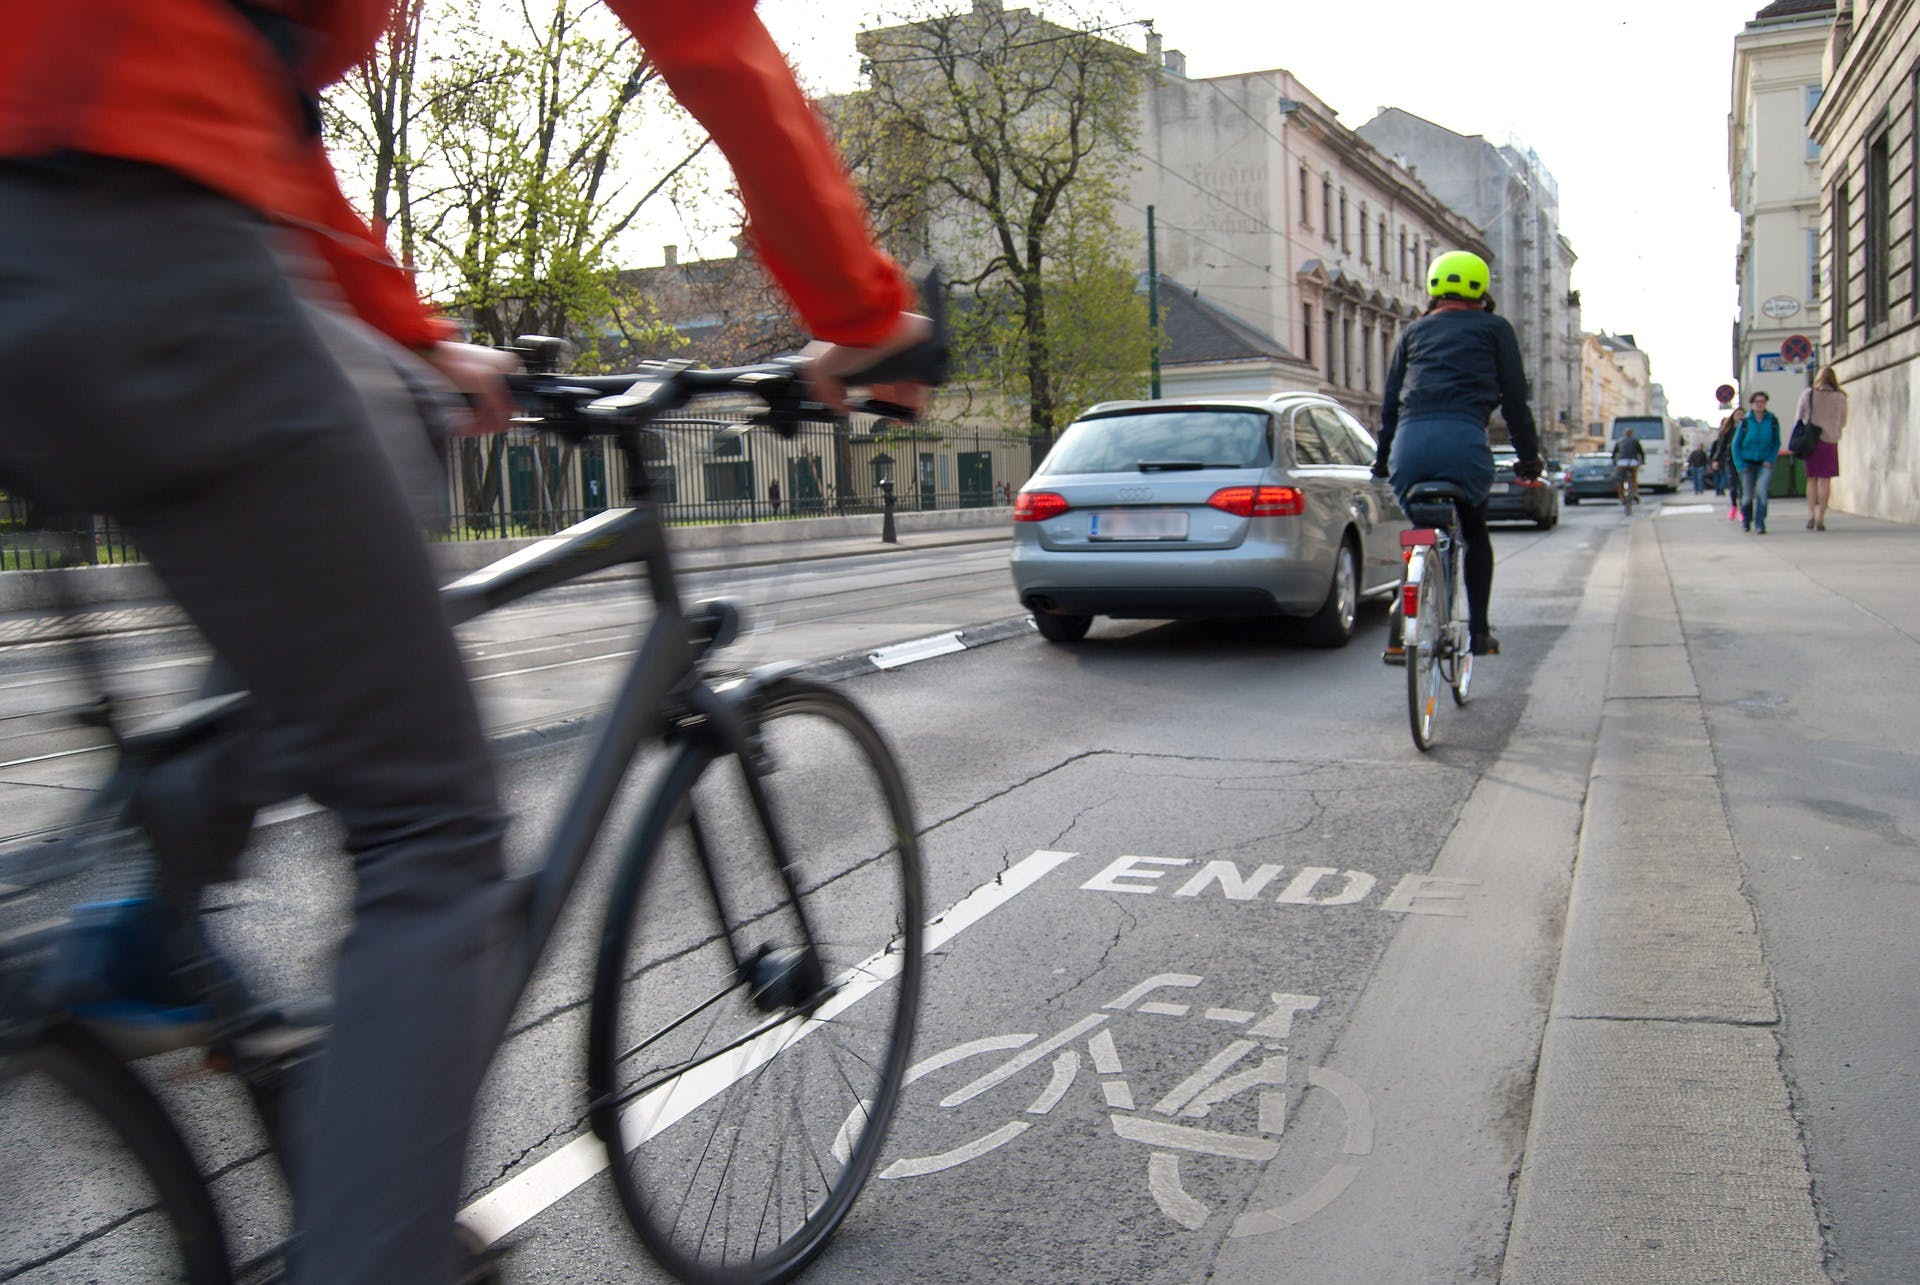 Cyclists on the road